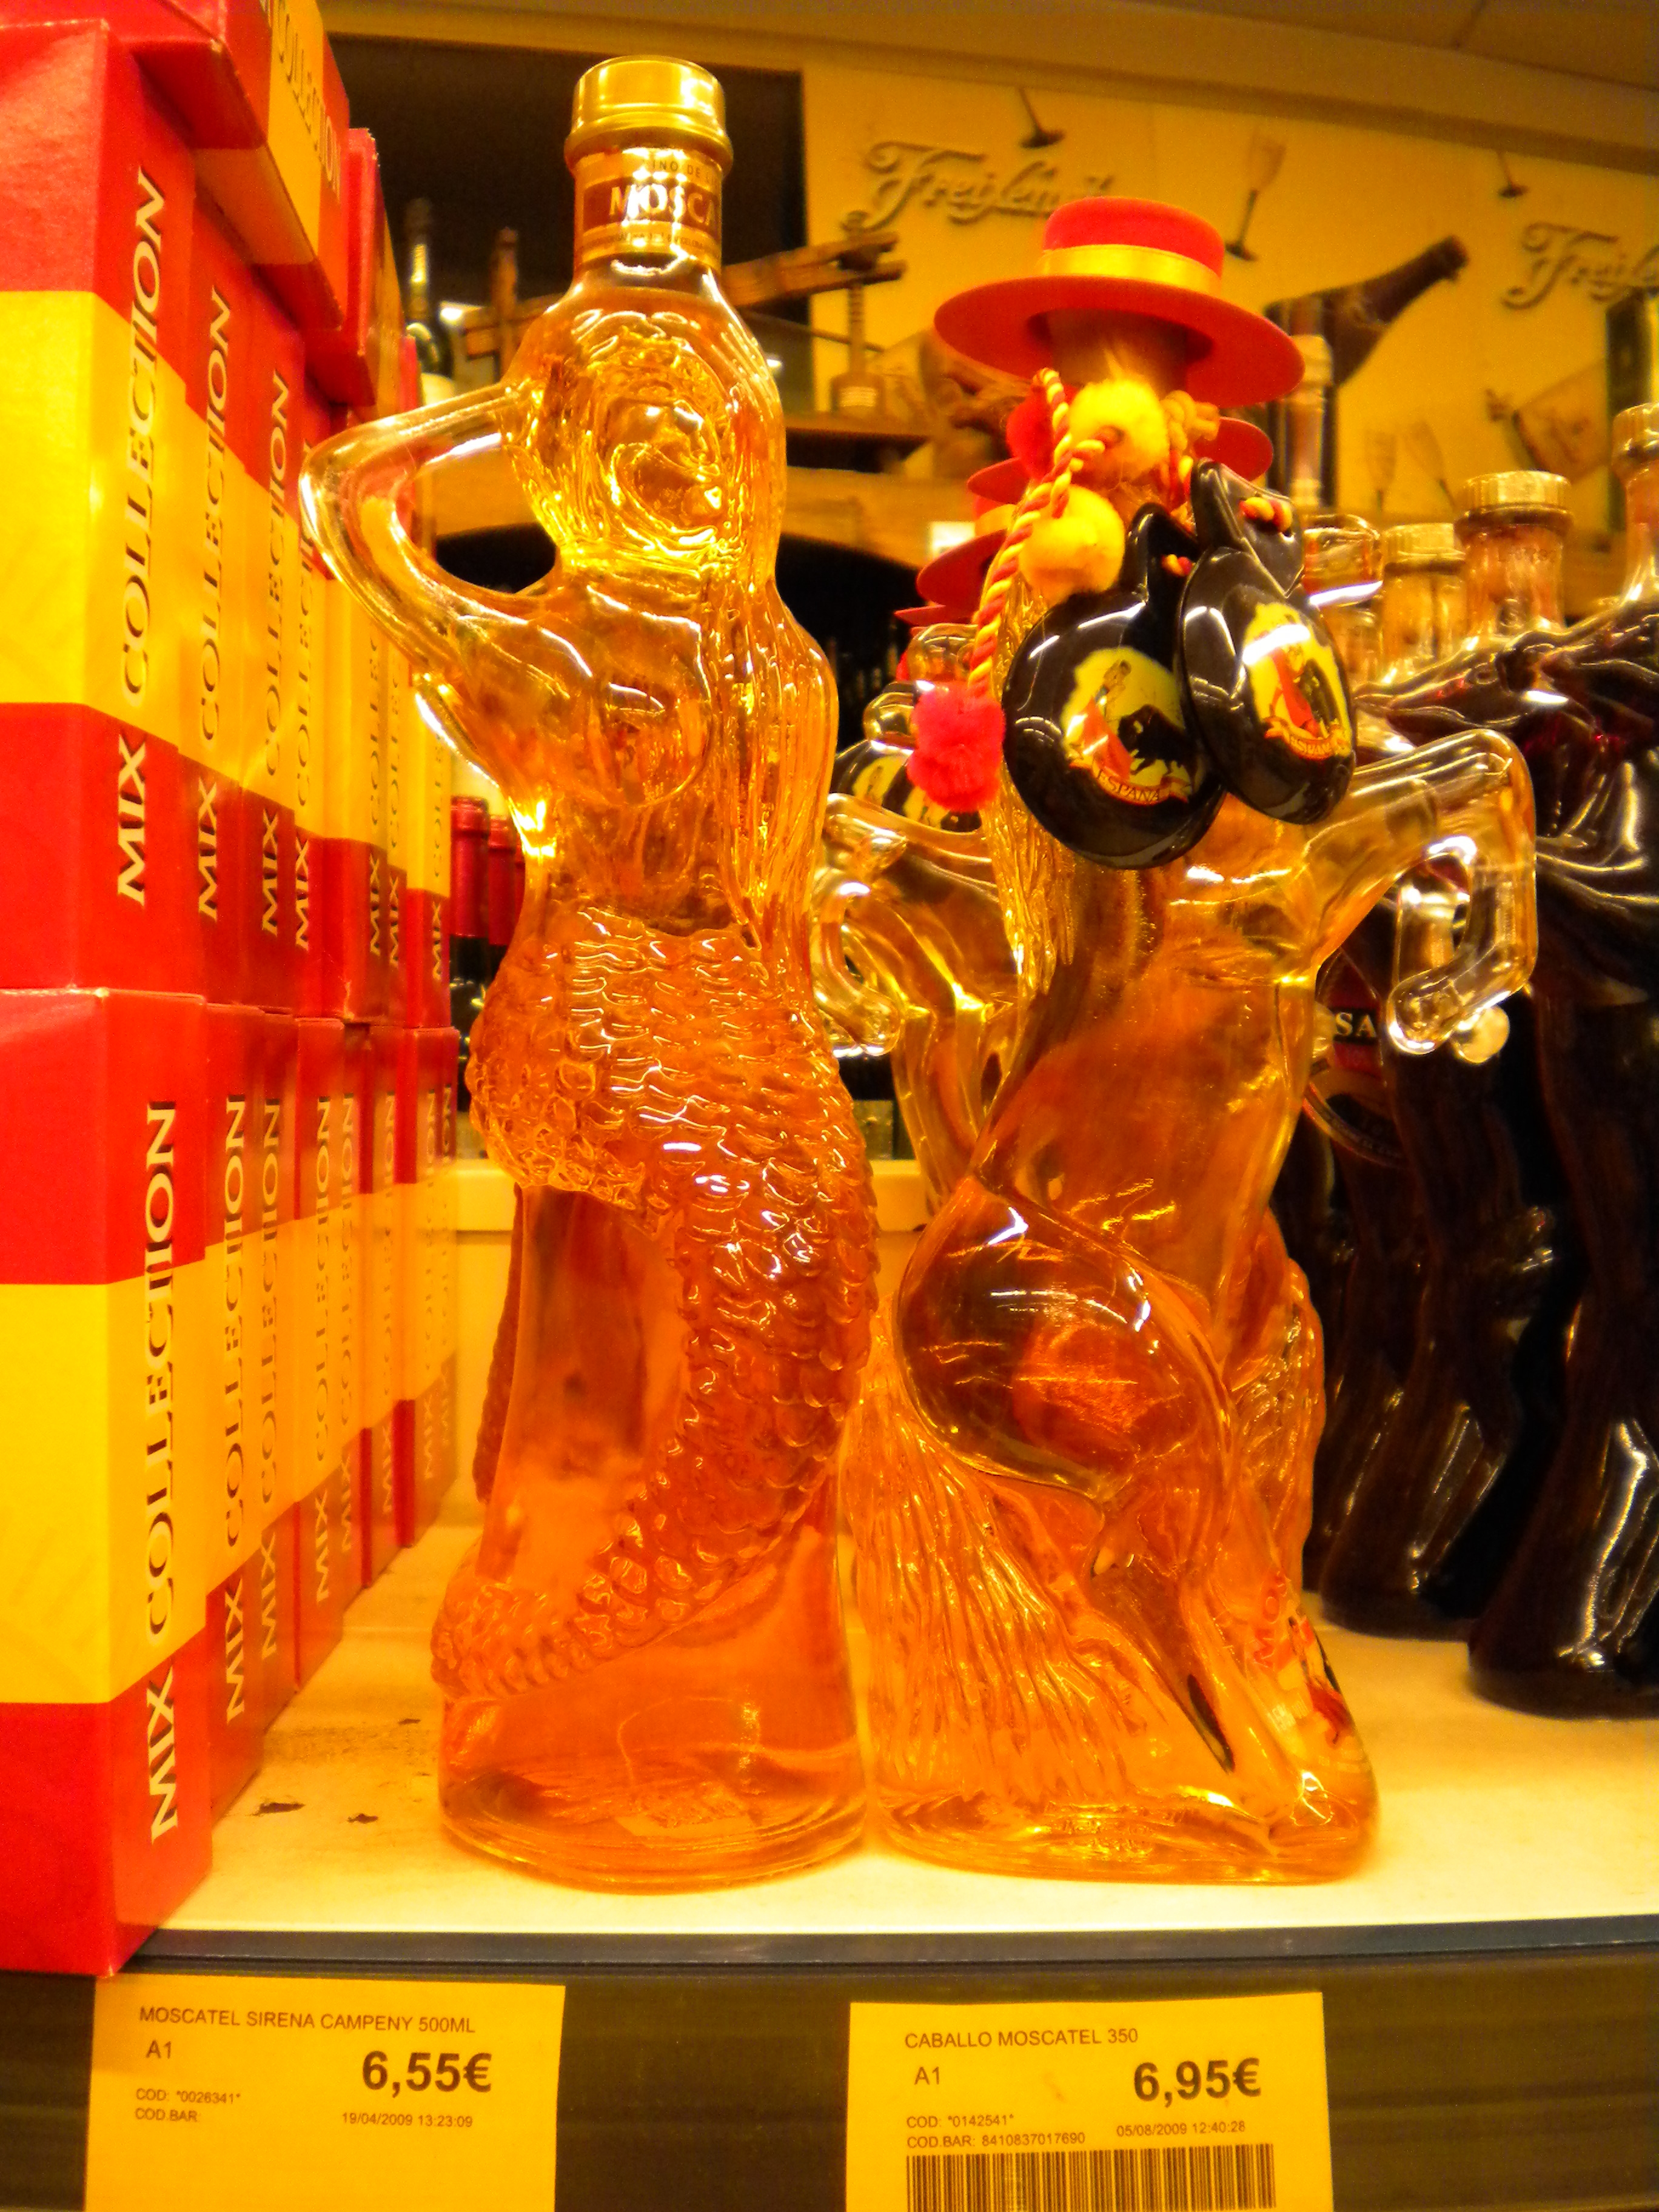 Moscatel mermaid and horse